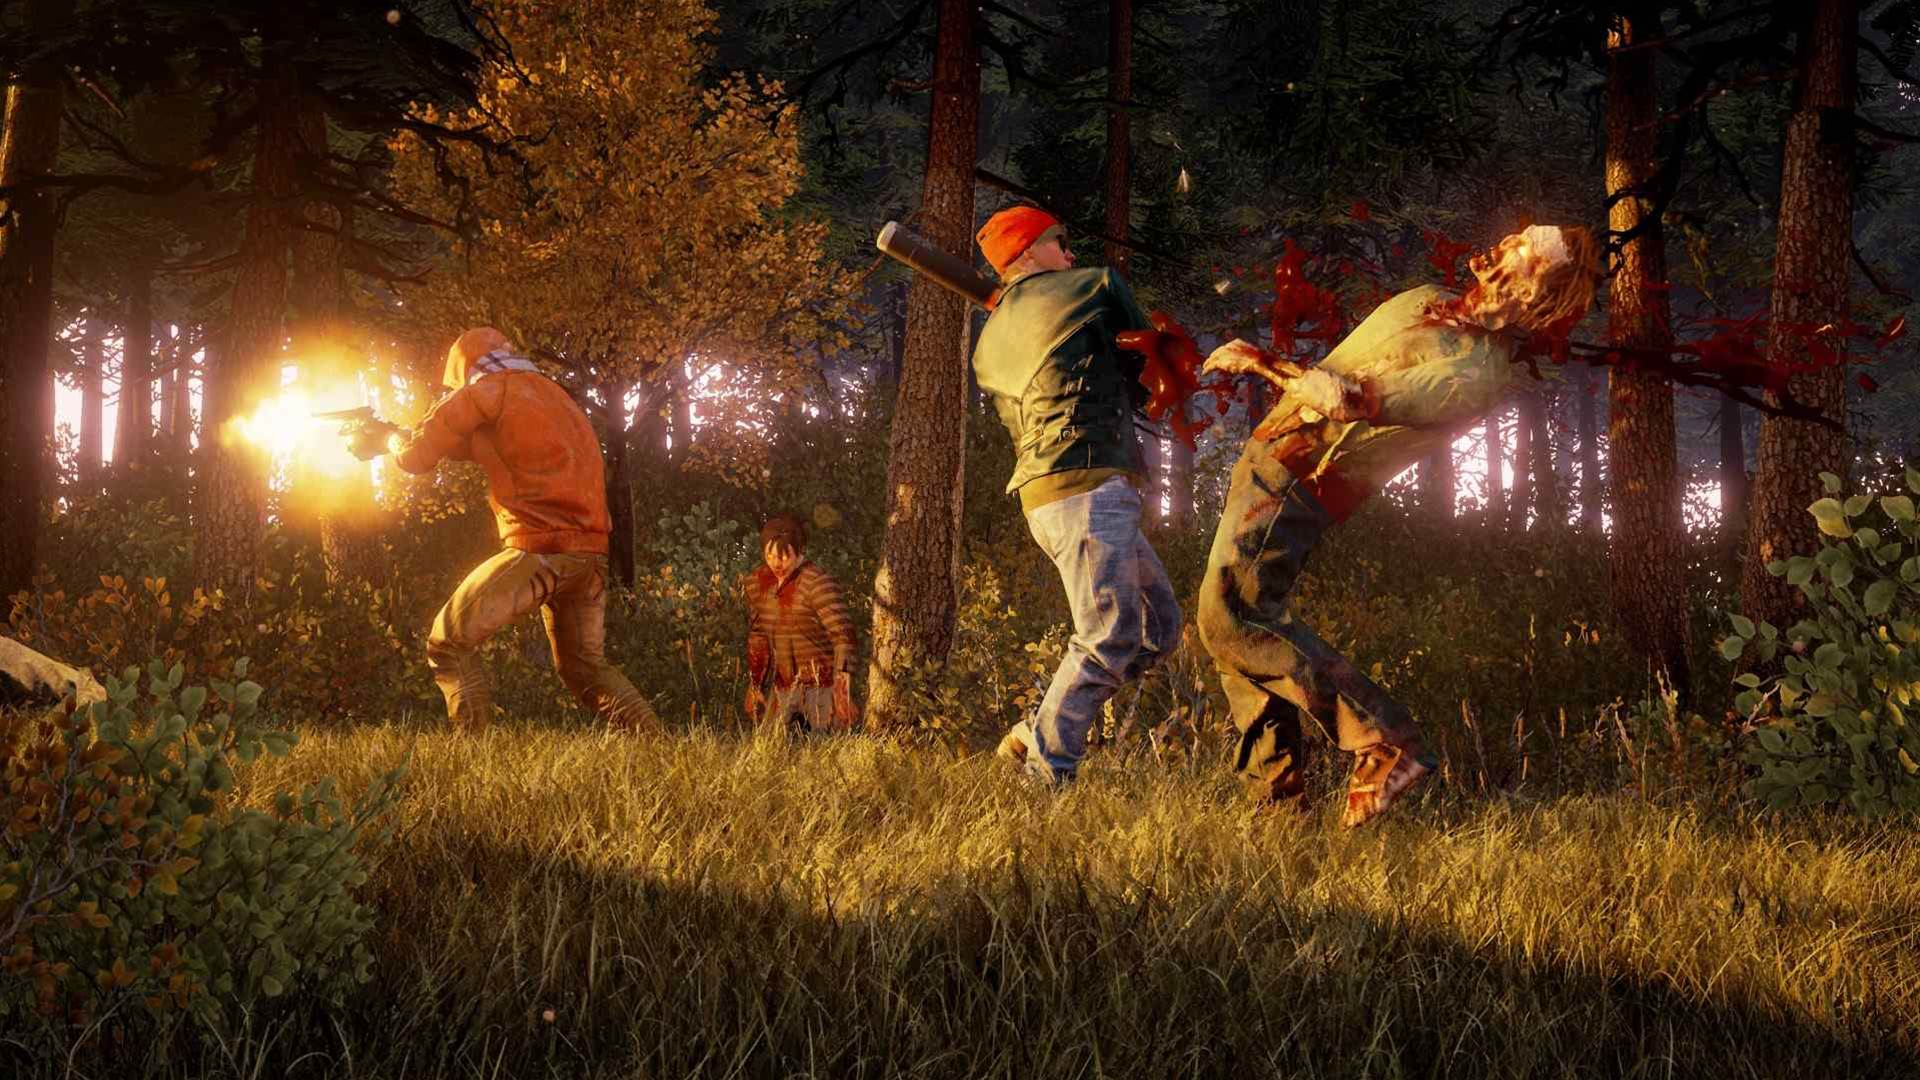 These State of Decay 2 screens need braaaains